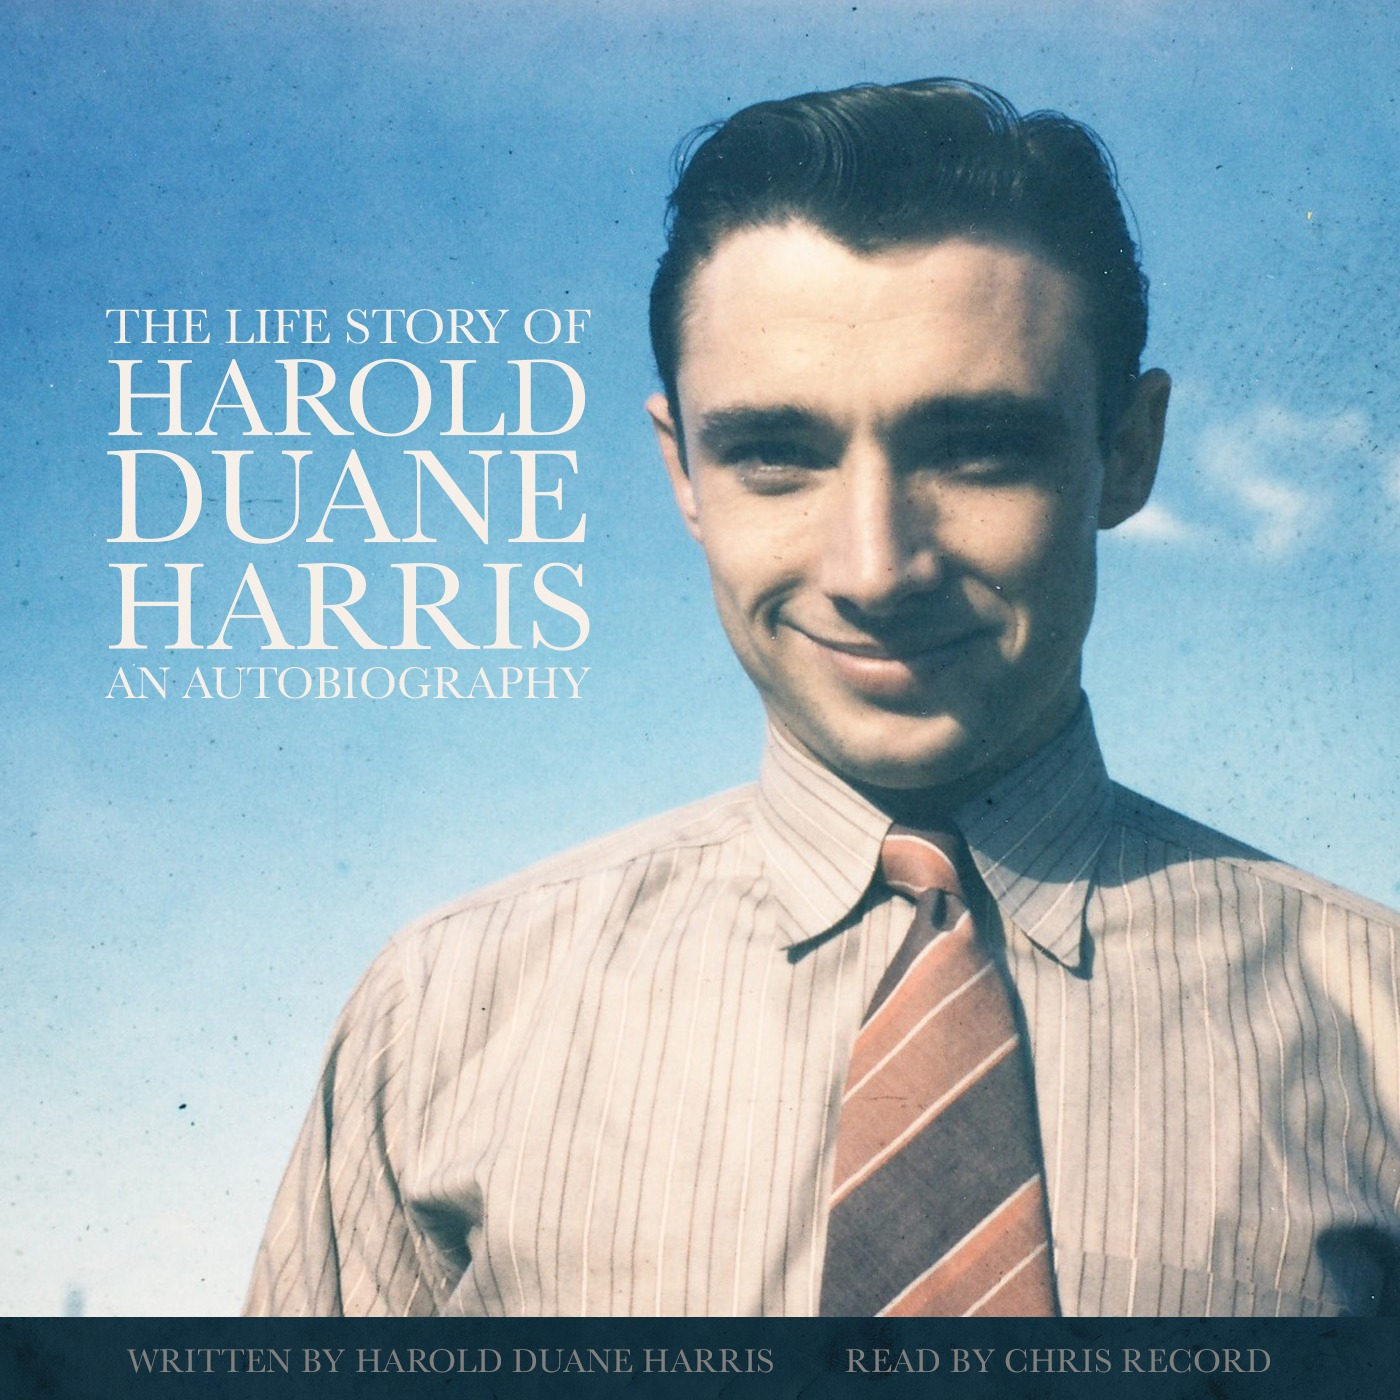 The Life Story of Harold Duane Harris